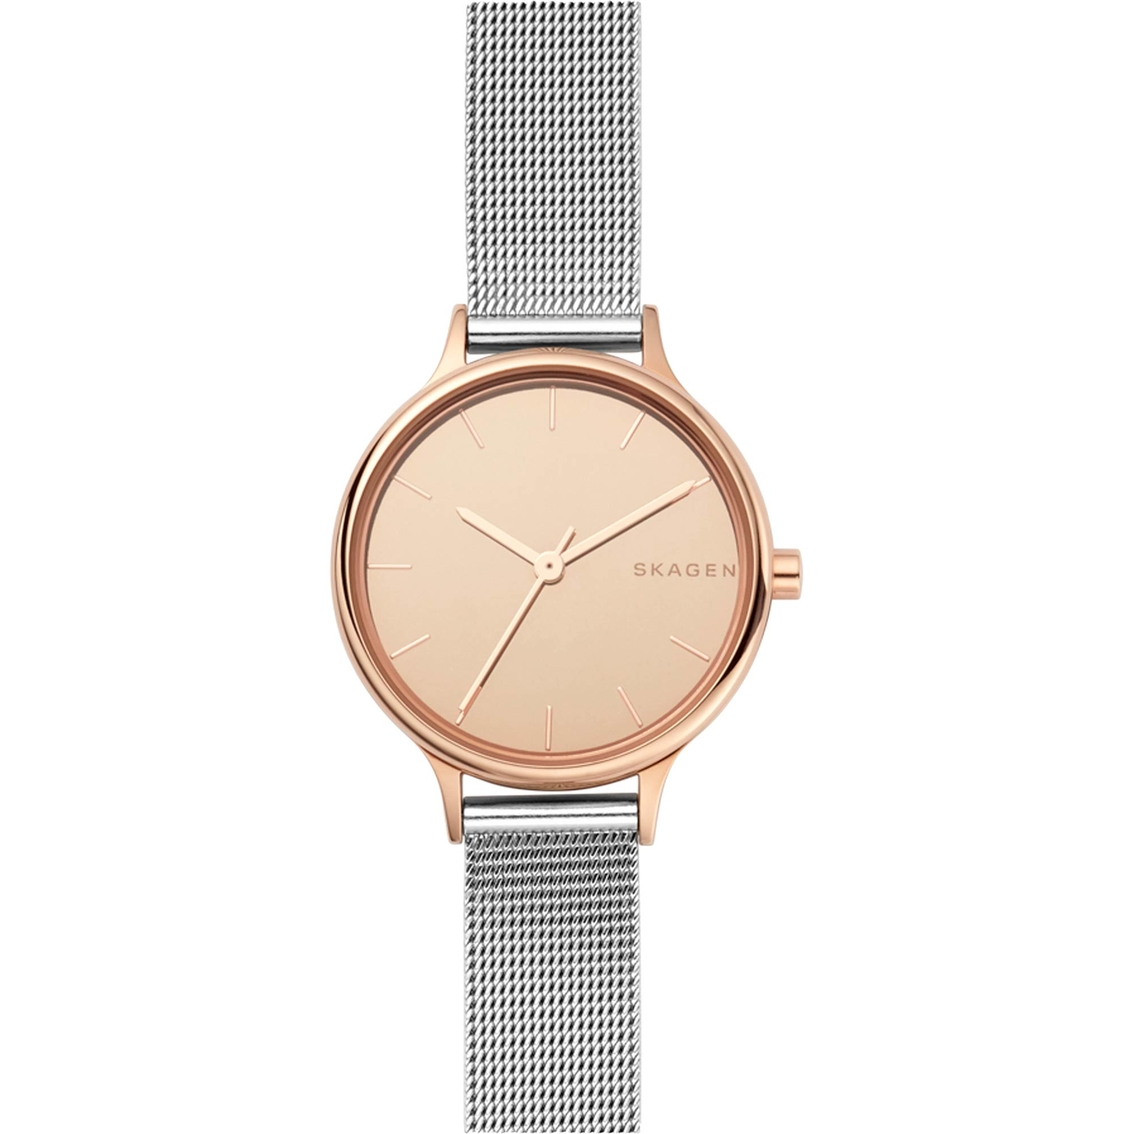 wont on the s mens bank wrist closeup face watches that break men